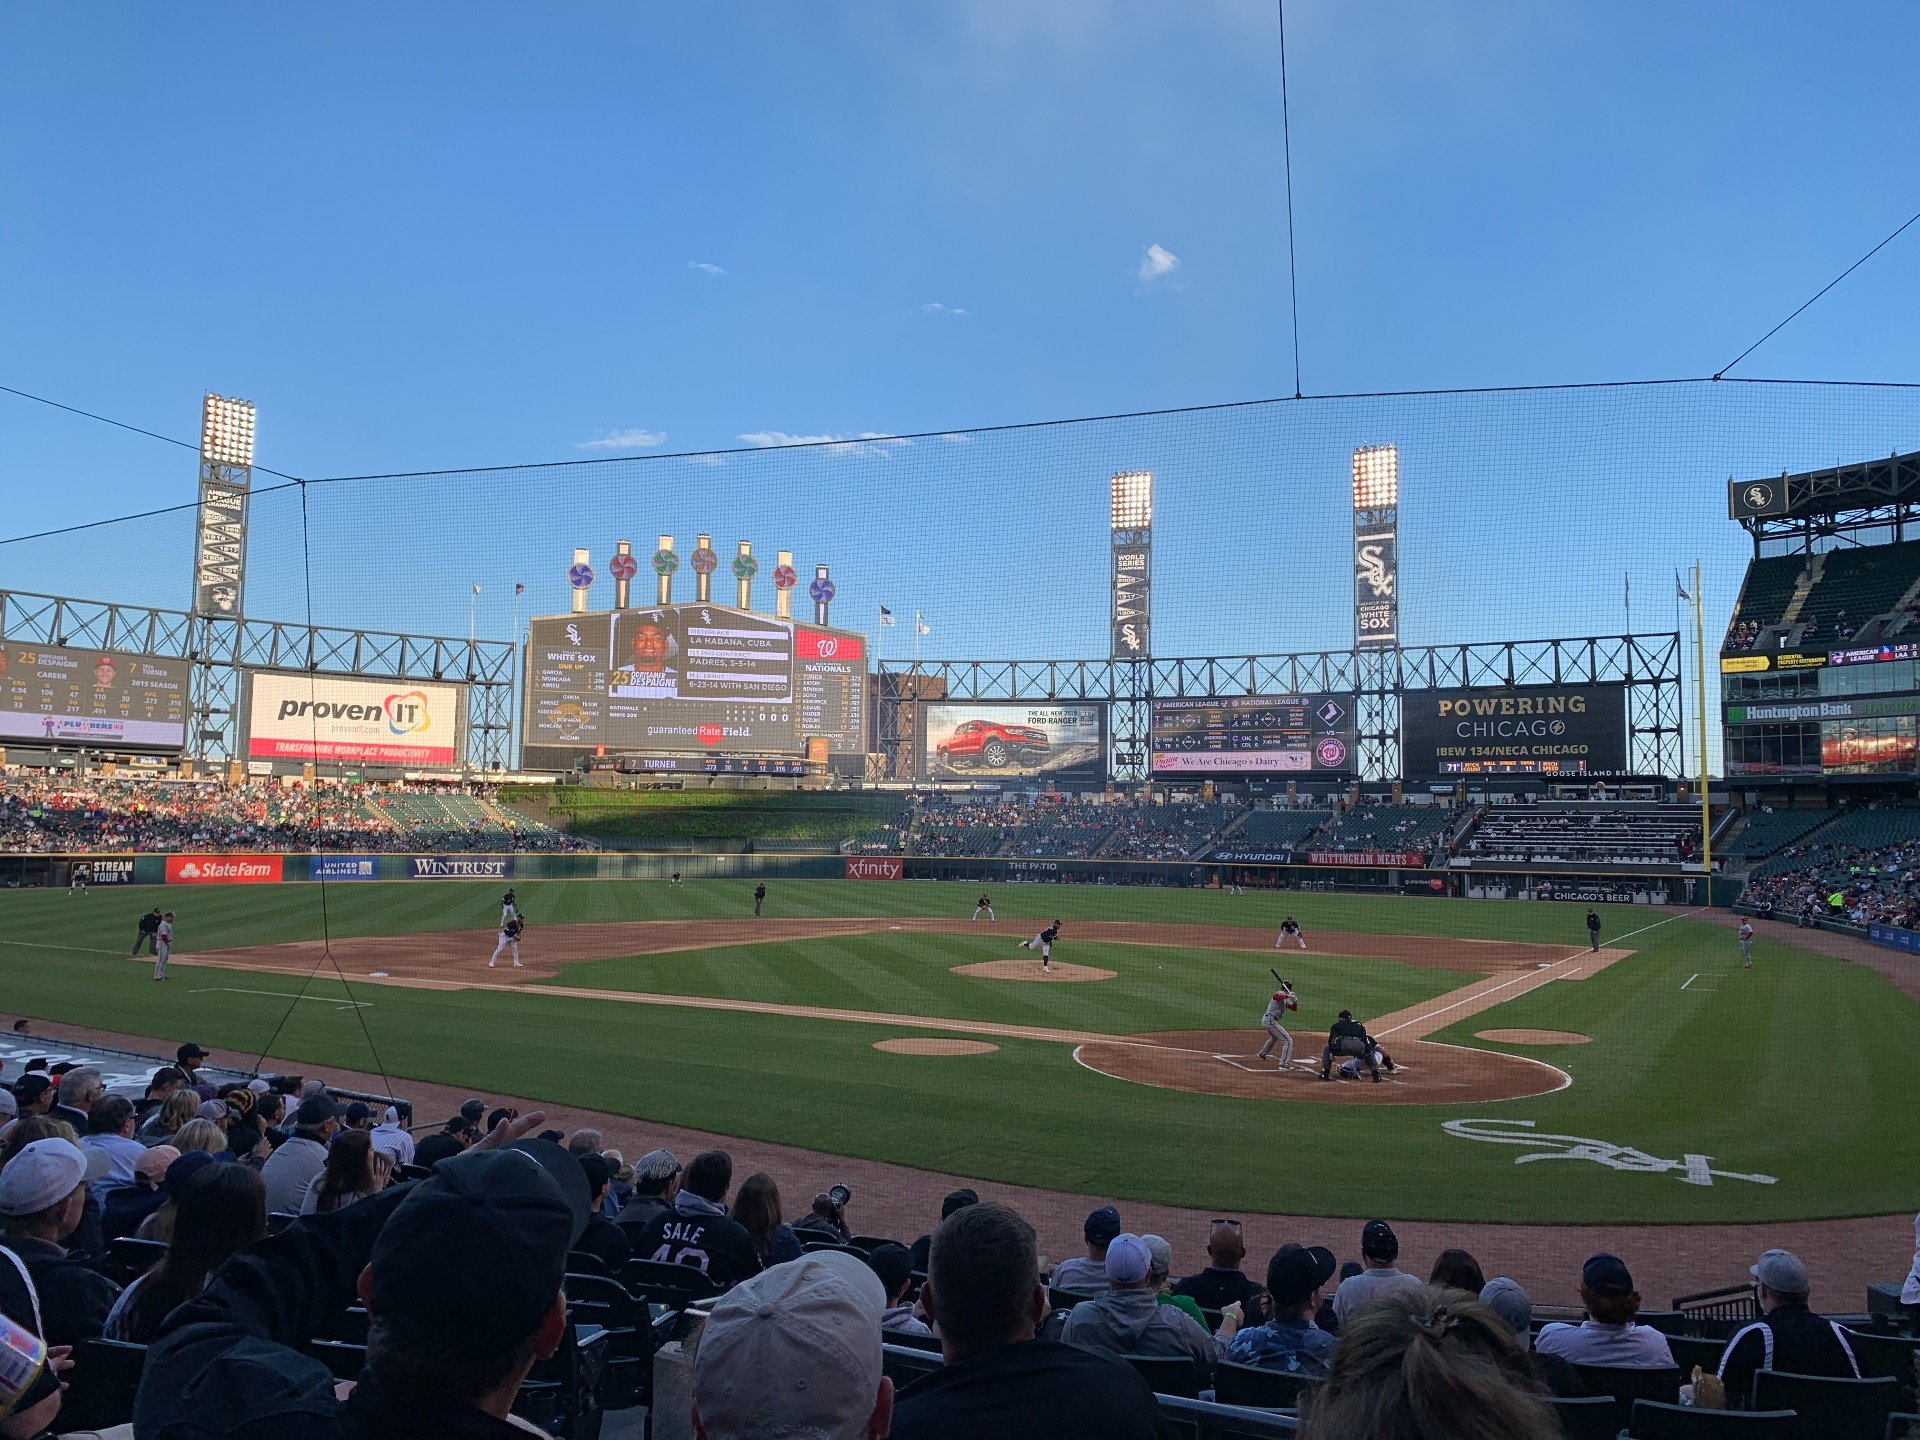 Guaranteed Rate Field Section 134 Row 16 Seat 7